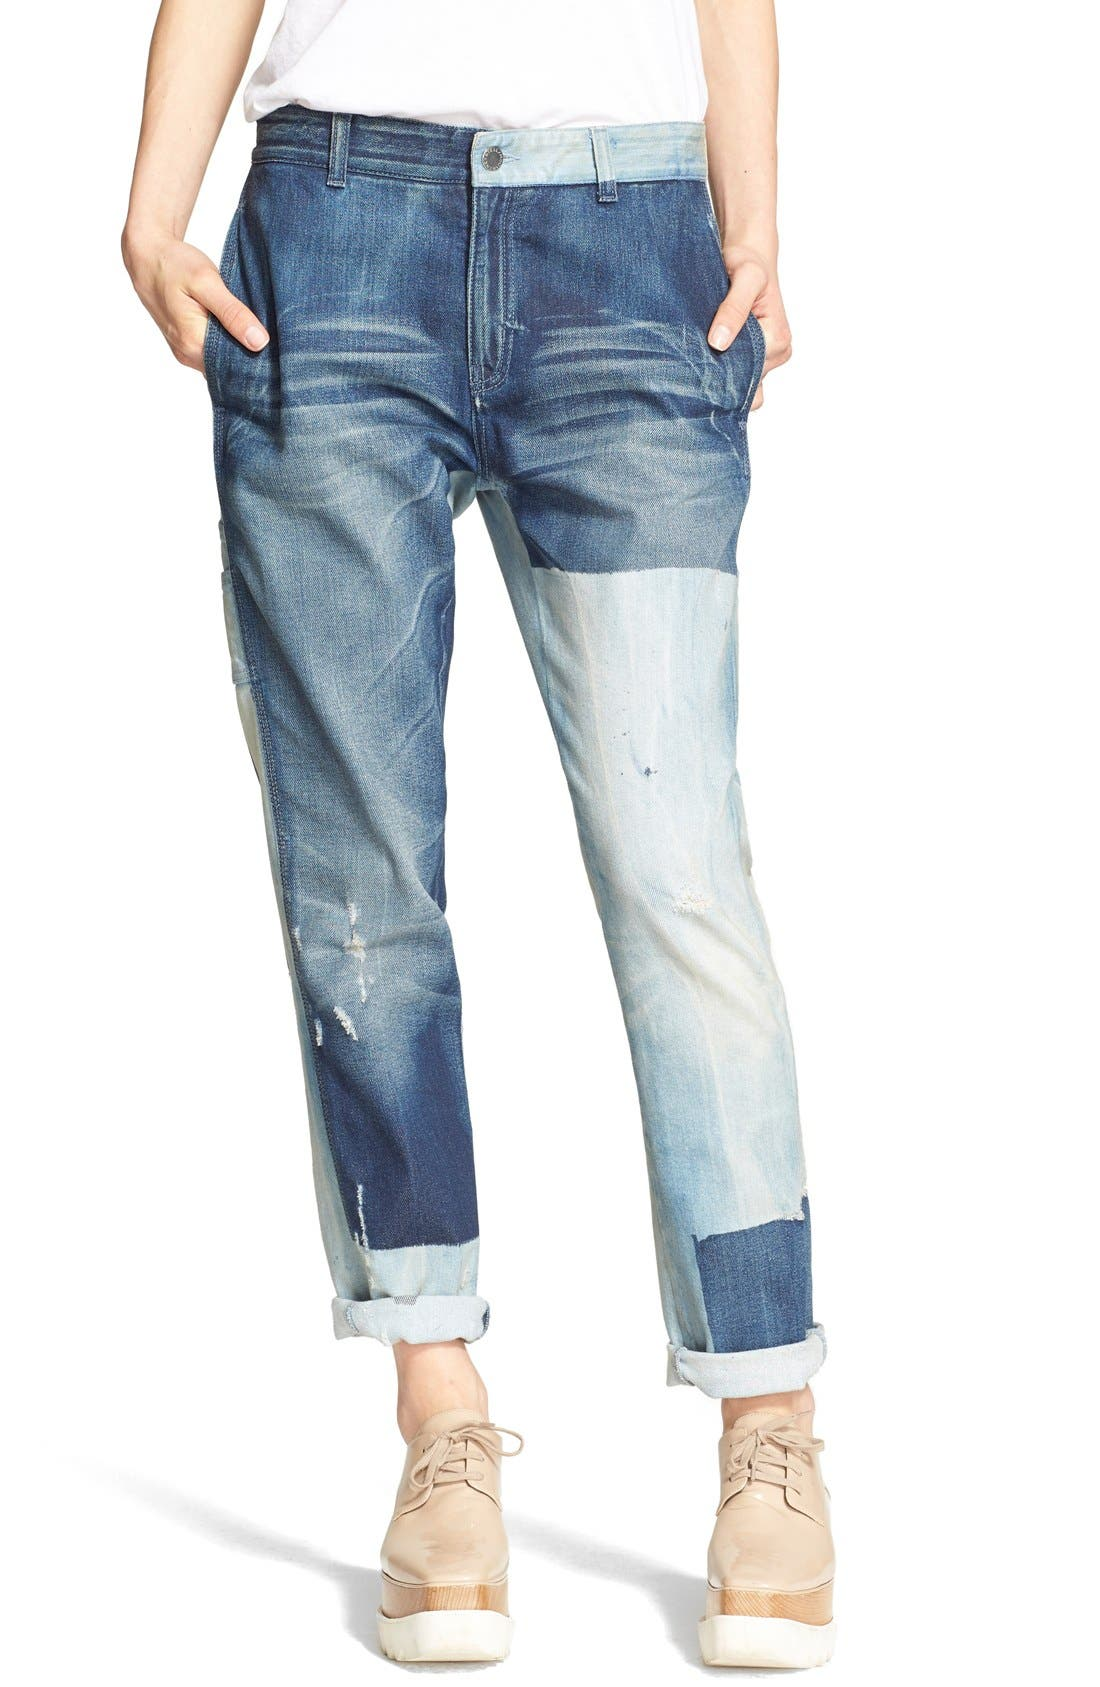 STELLA MCCARTNEY,                             'The Patchwork' Boyfriend Jeans,                             Main thumbnail 1, color,                             476